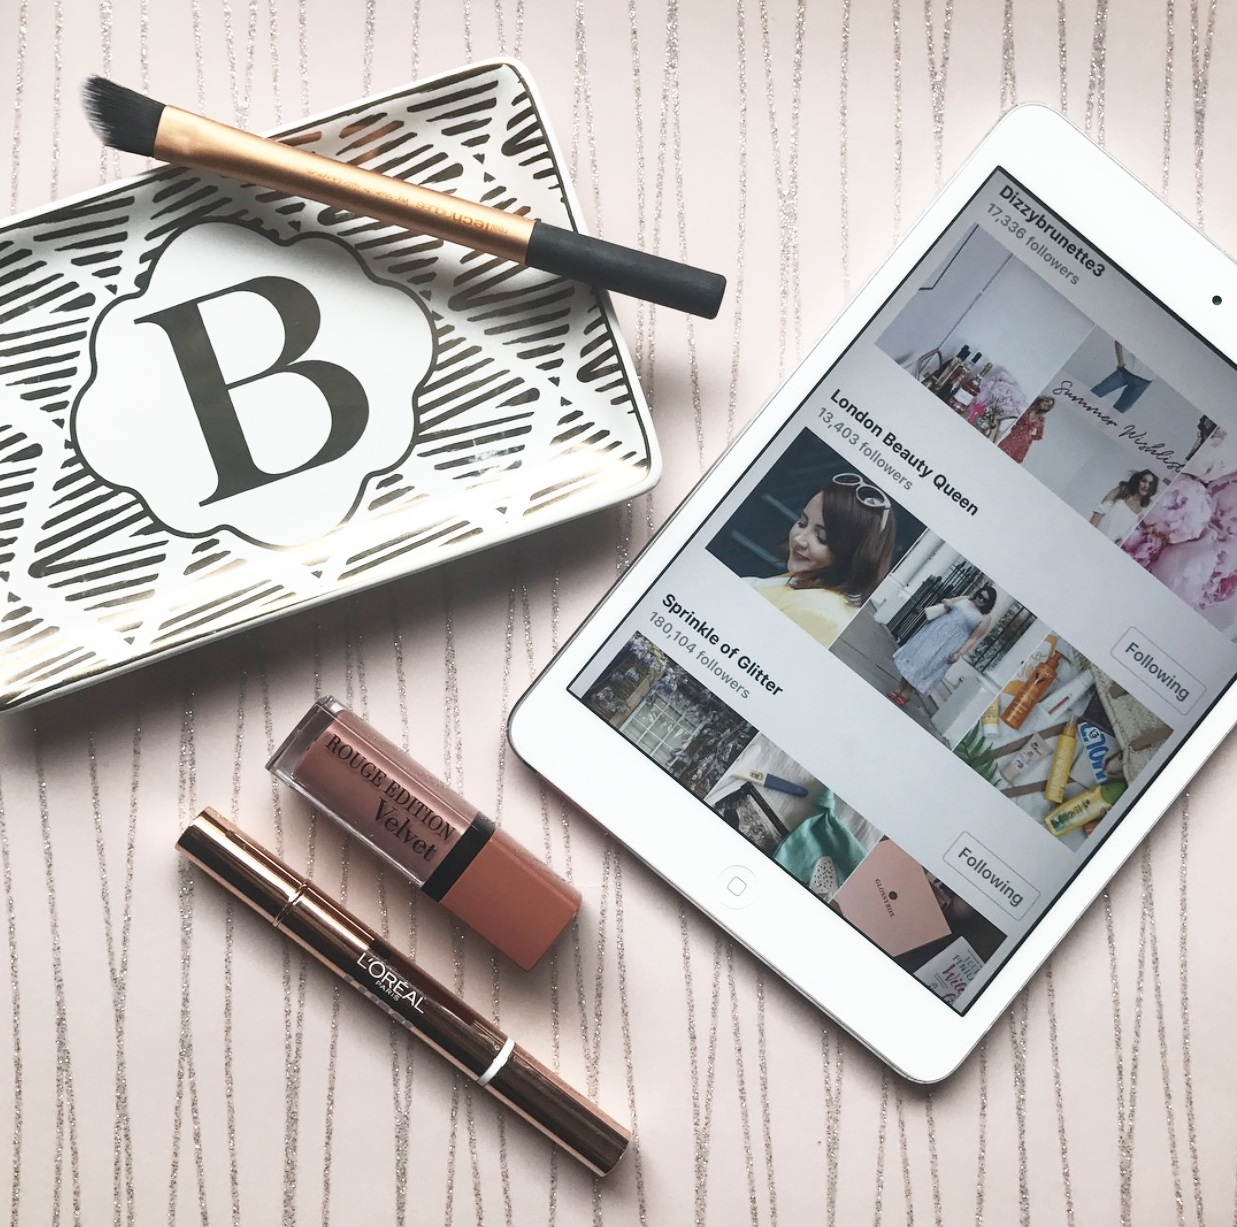 Top bloggers and vloggers